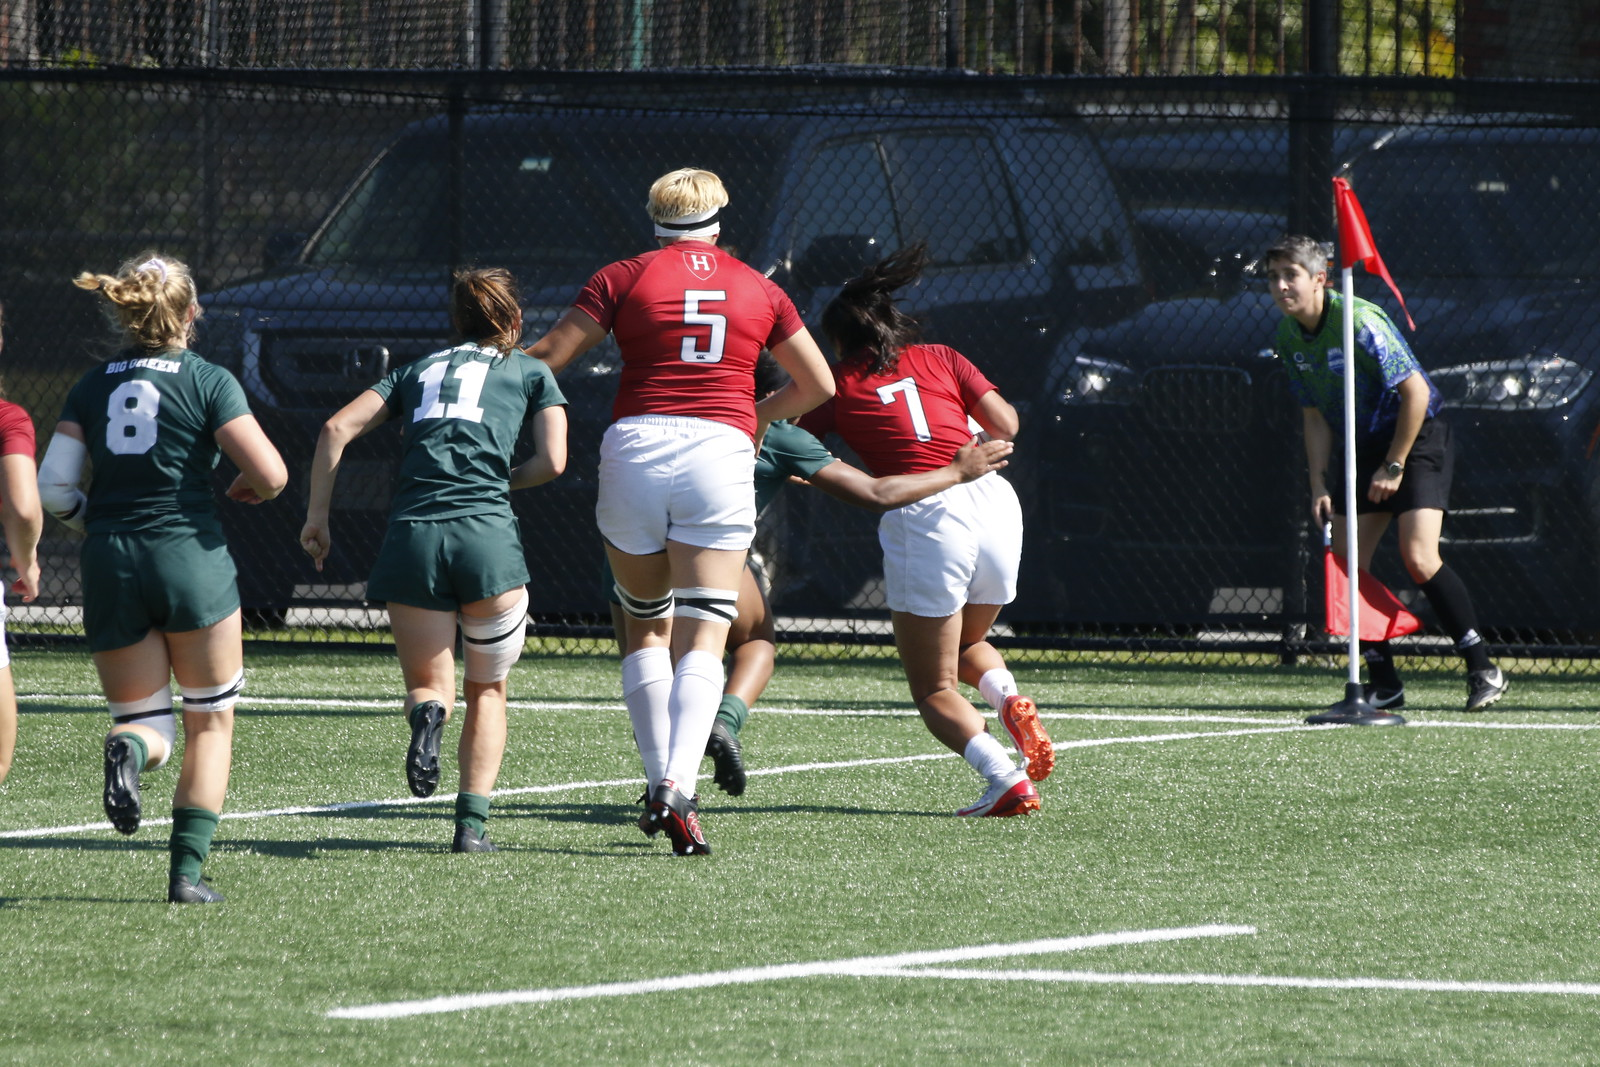 Gabrielle Fernandopulle '21 (#7) scores a try in the 2019 season home opener against Dartmouth.